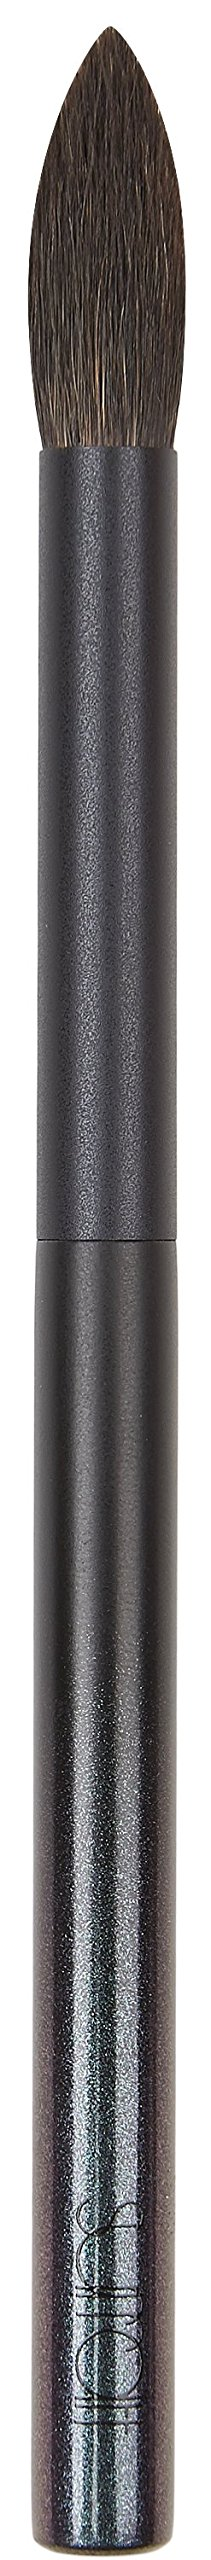 SURRATT Artistique Moyenne (Medium) Smokey Eye Brush by SURRATT